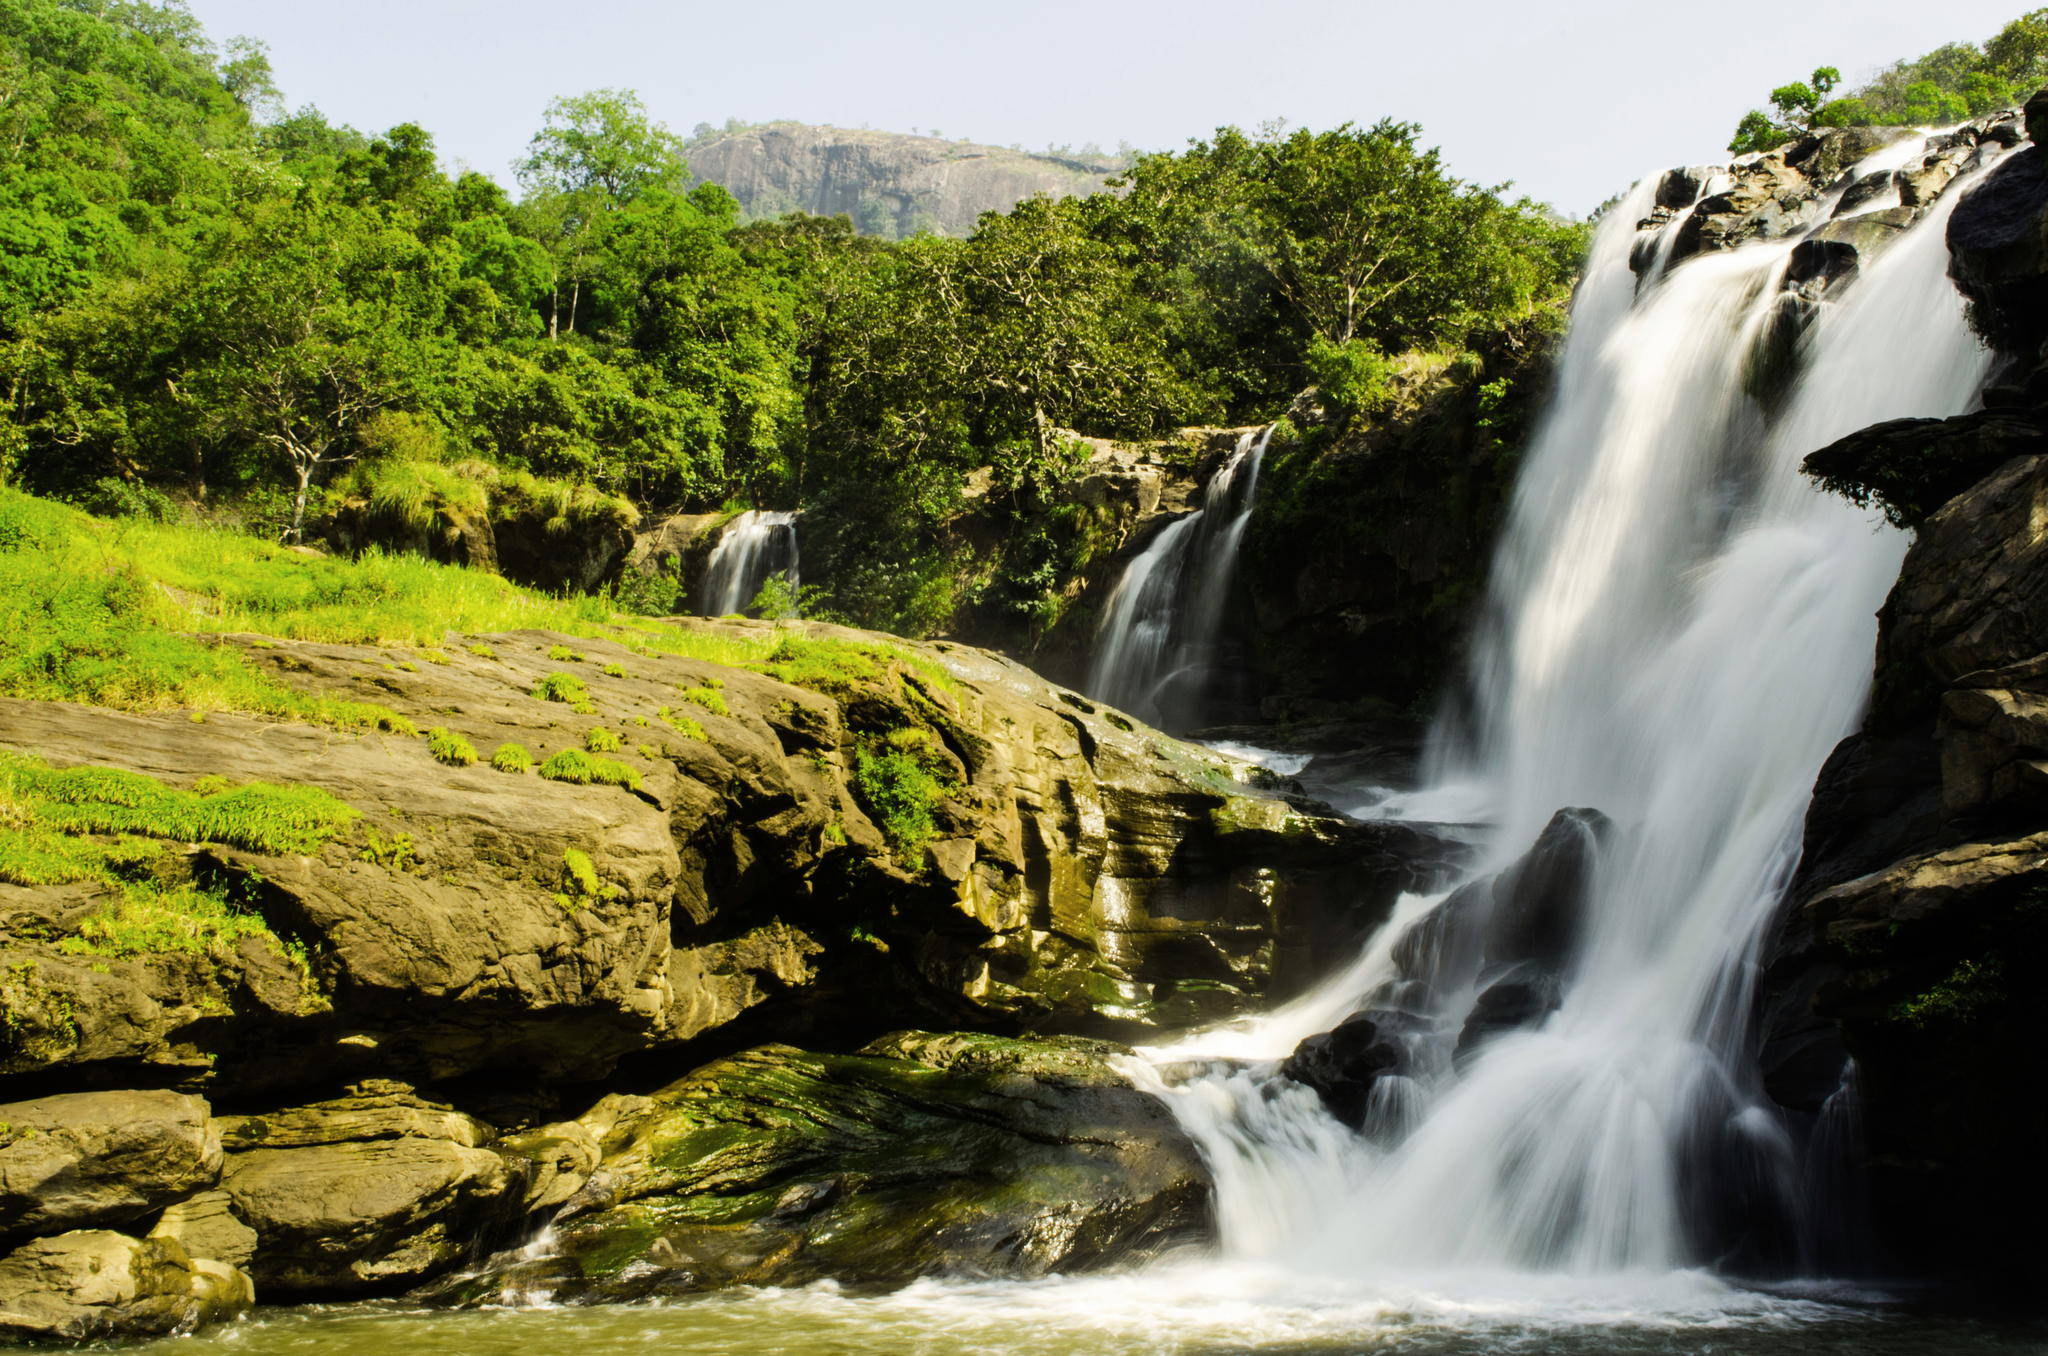 Nayamakadu-Waterfall